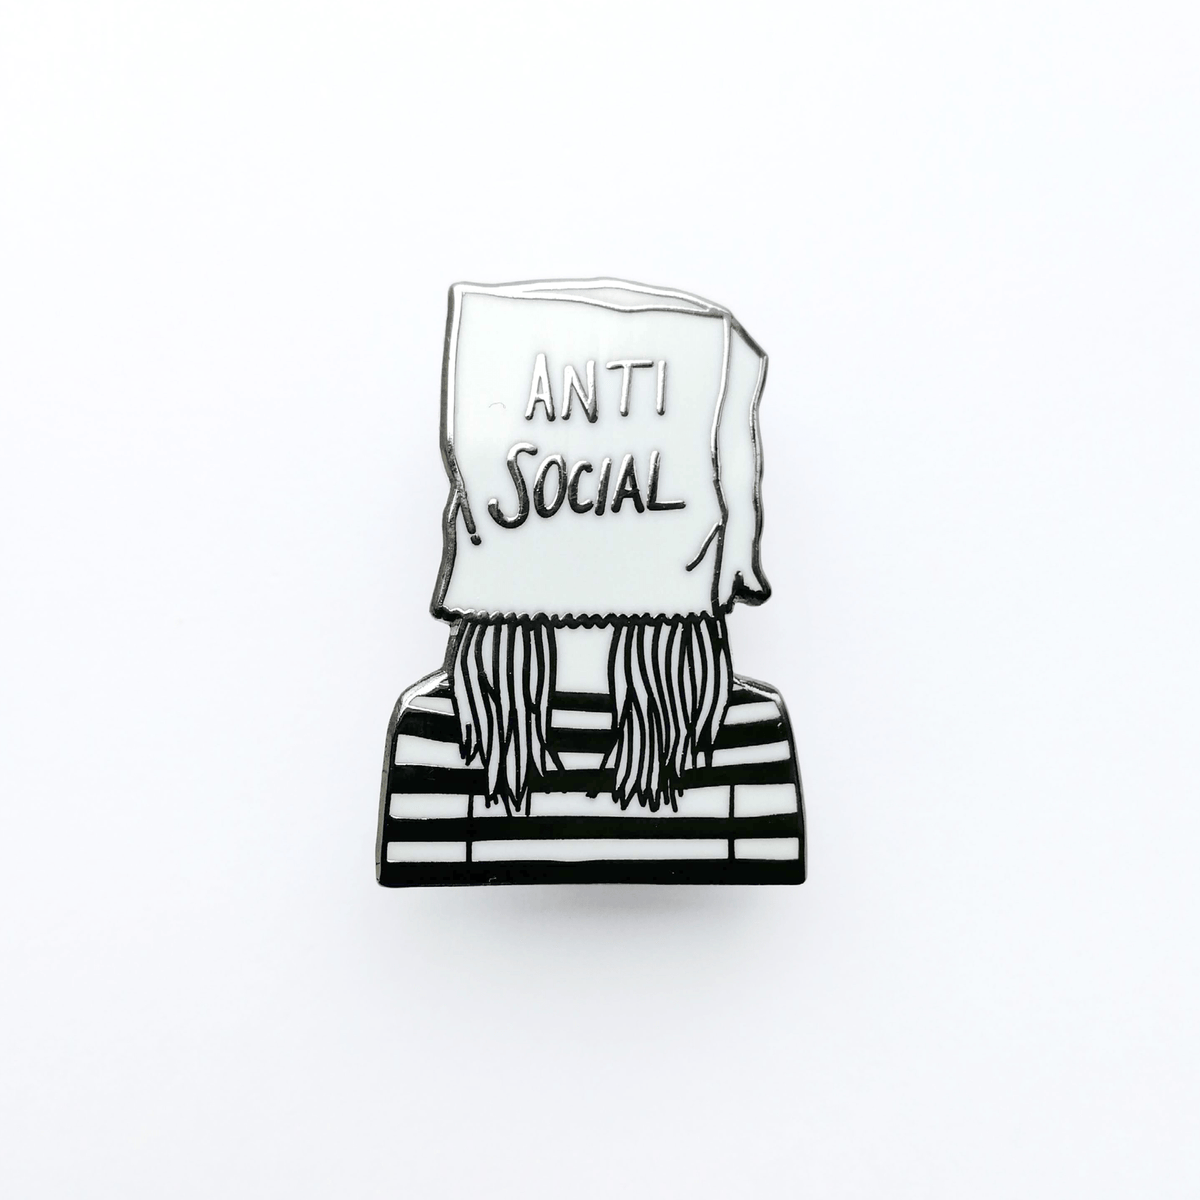 Anti Social Hard Enamel Pin by Corrin Strain - Whale and Bird